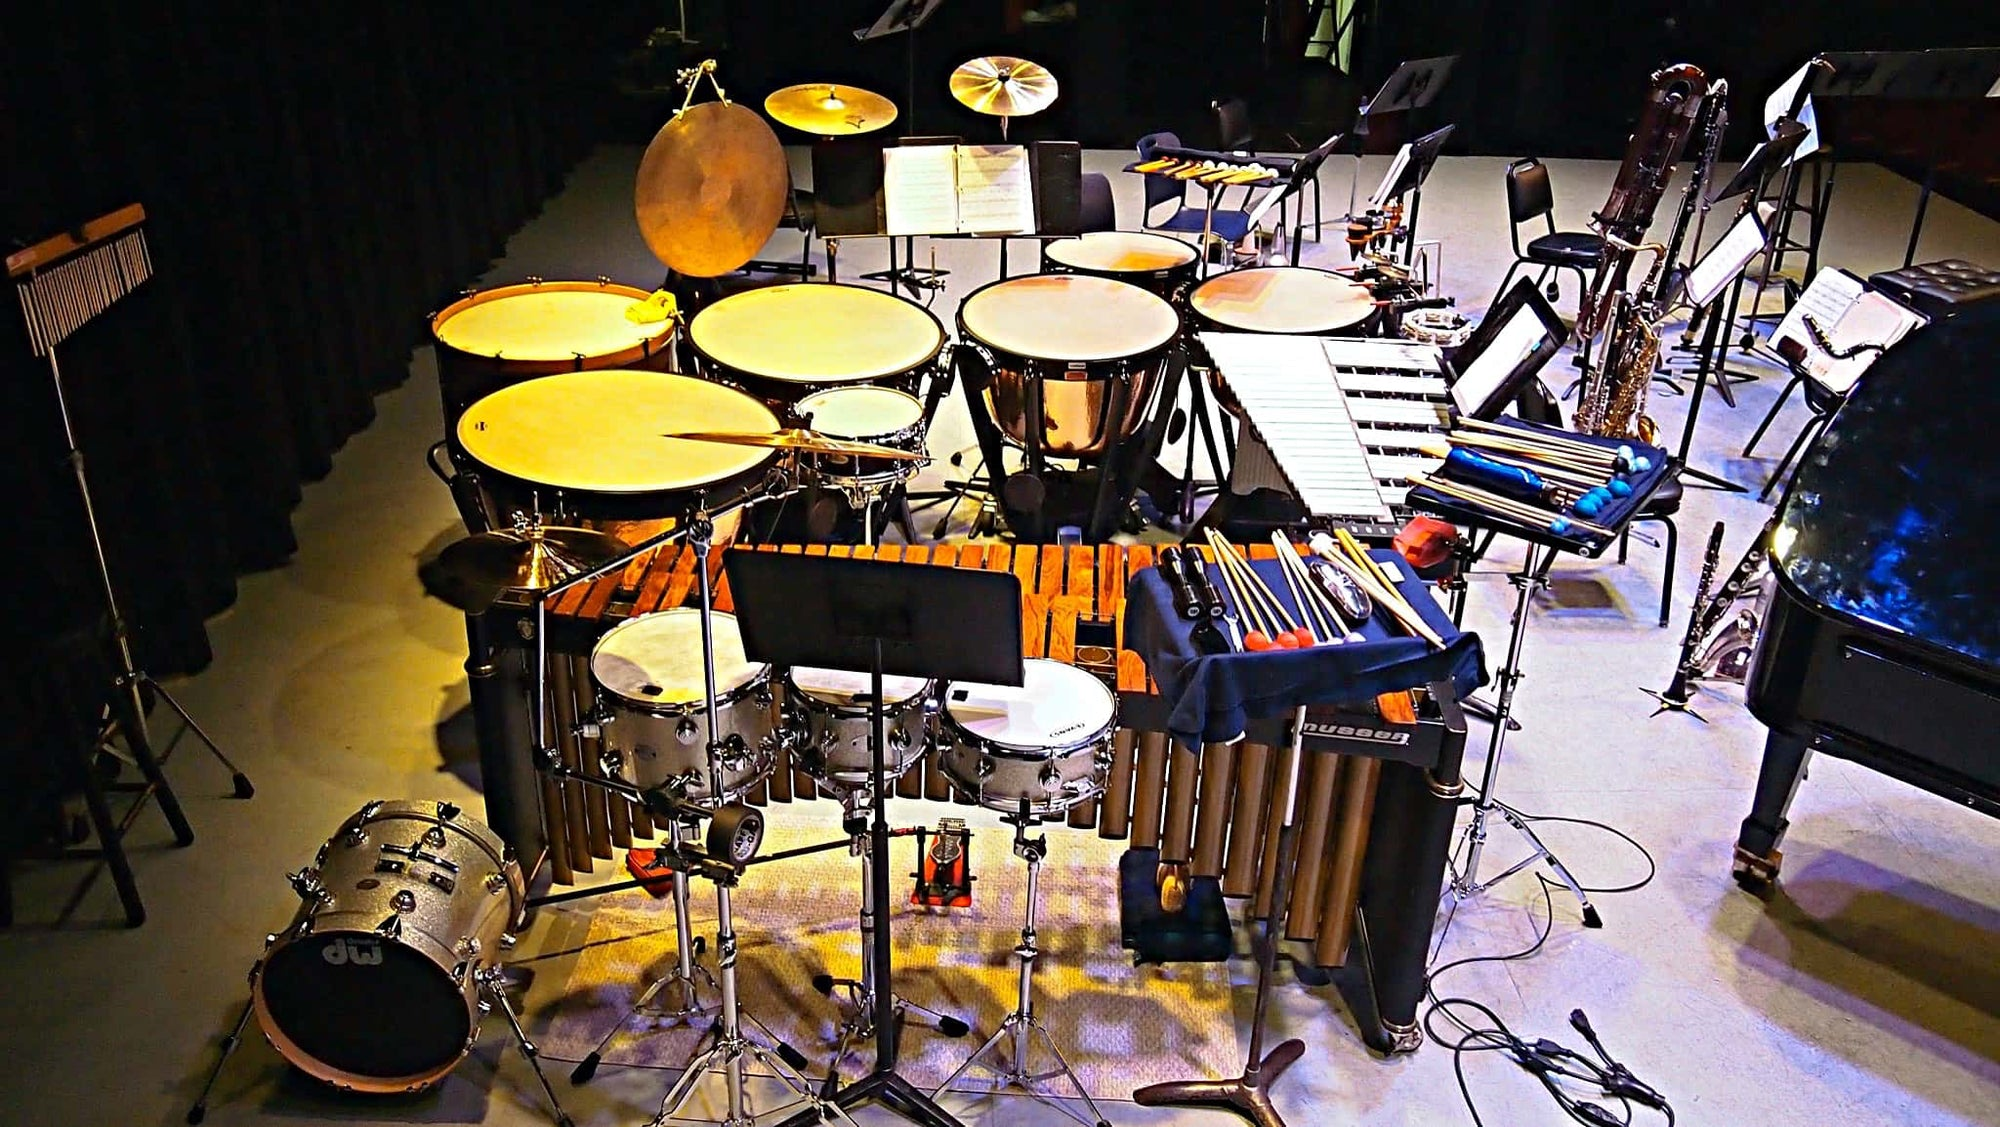 Greg Landes' setup for the Pit Stop Players' concert at Symphony Space in New York City.